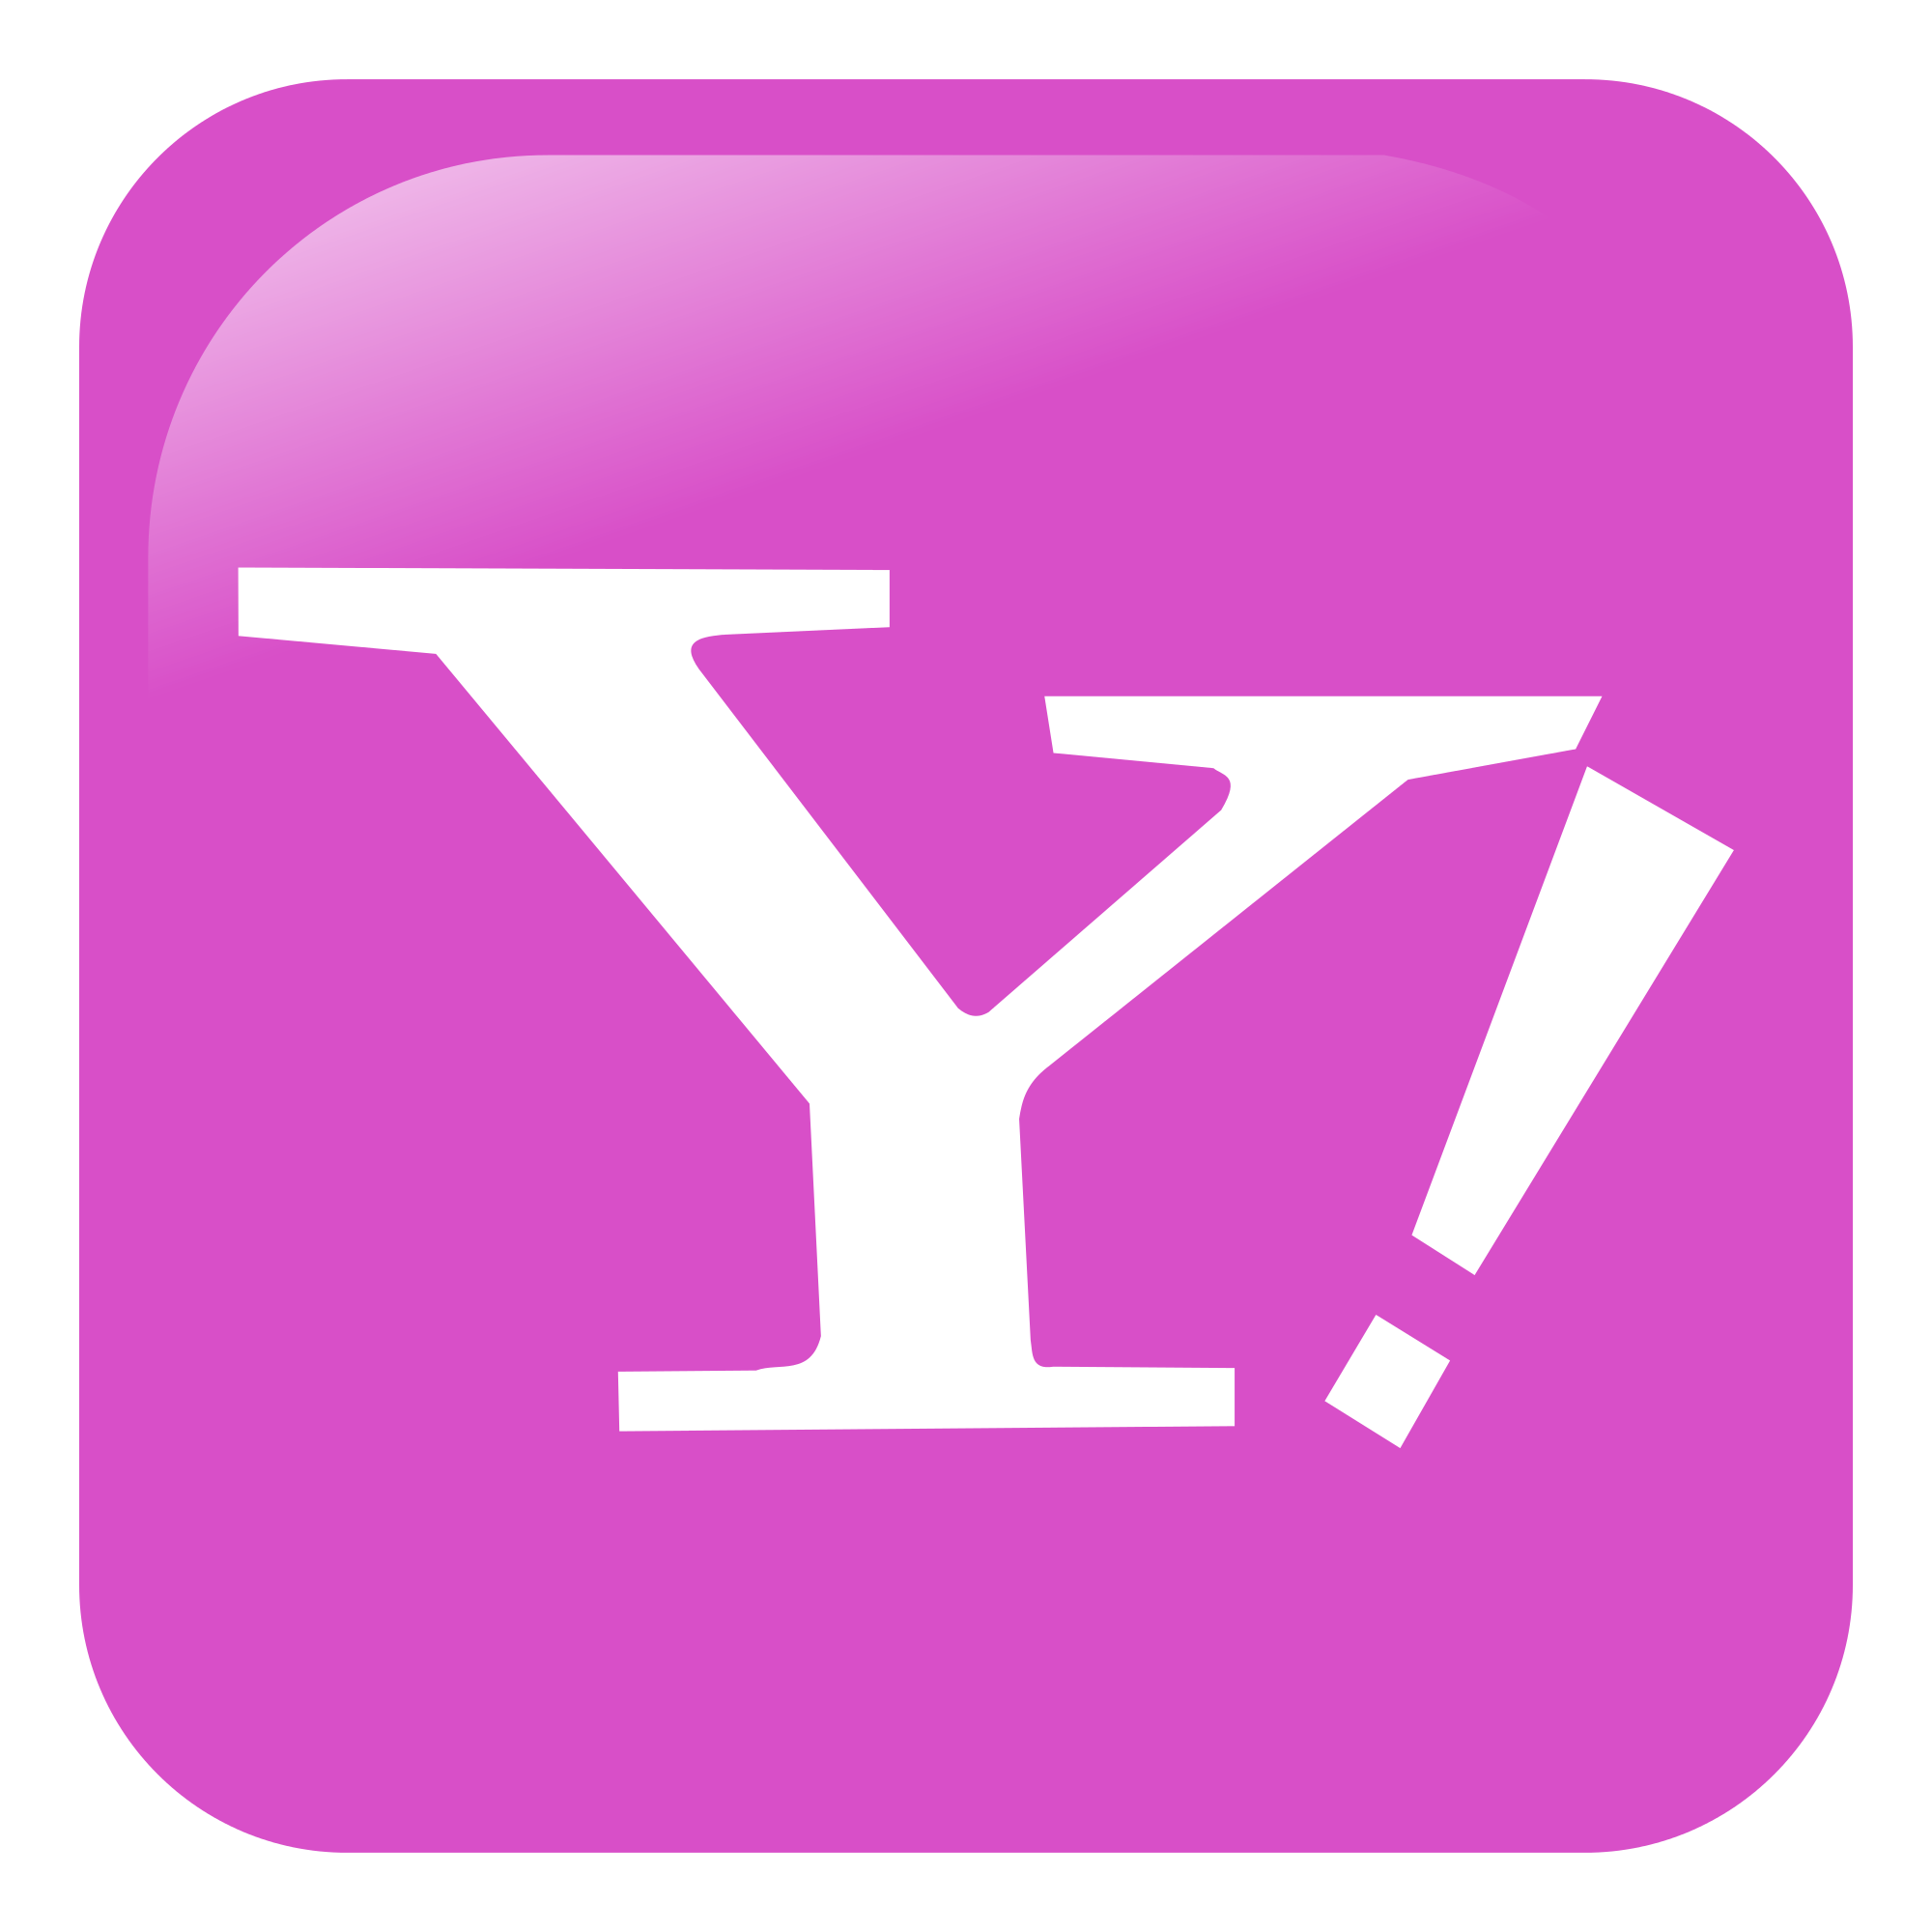 Open PlusPng.com  - Yahoo Old Logo Vector PNG